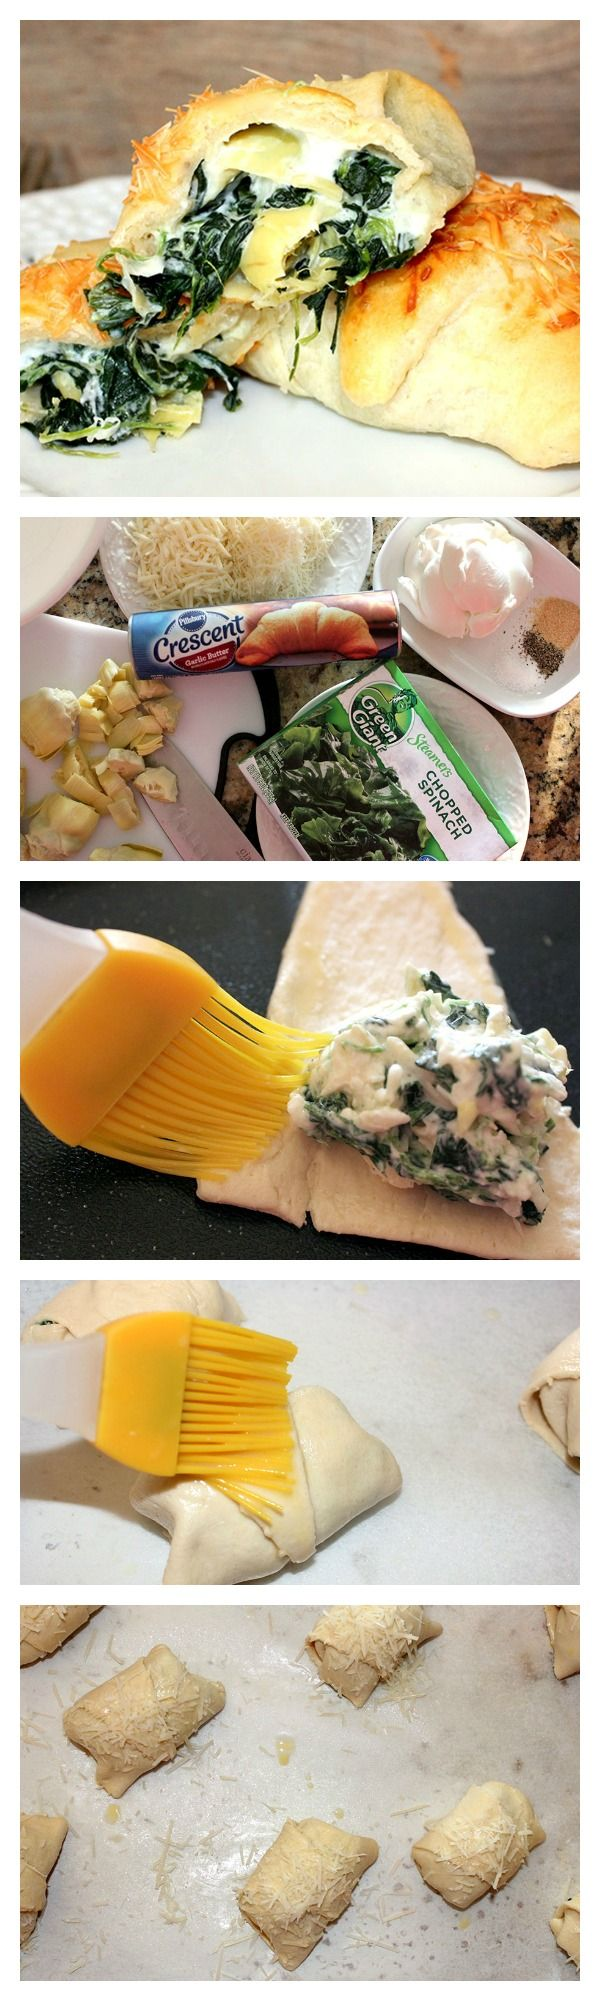 Crescents stuffed with spinach and artichoke dip make for a delicious game day app!